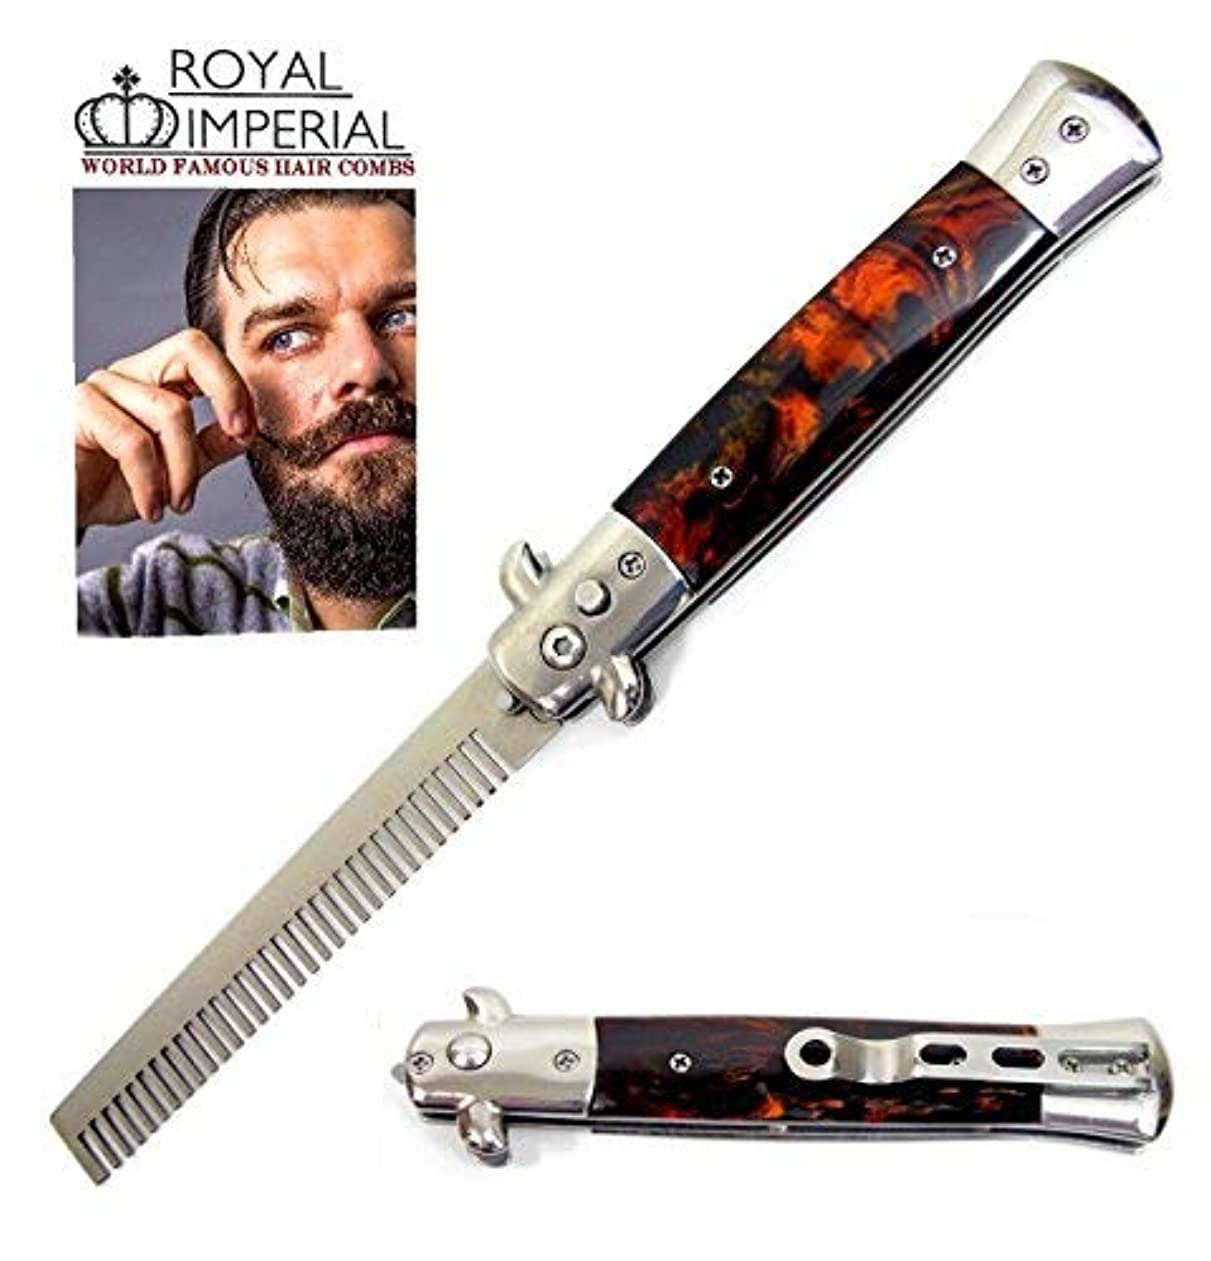 Royal Imperial Metal Switchblade Pocket Folding Flick Hair Comb For Beard, Mustache, Head TORTOISE SHELL FIRE Handle ~ INCLUDES Beard Fact Wallet Book ~ Nicer Than Butterfly Knife Trainer [並行輸入品]